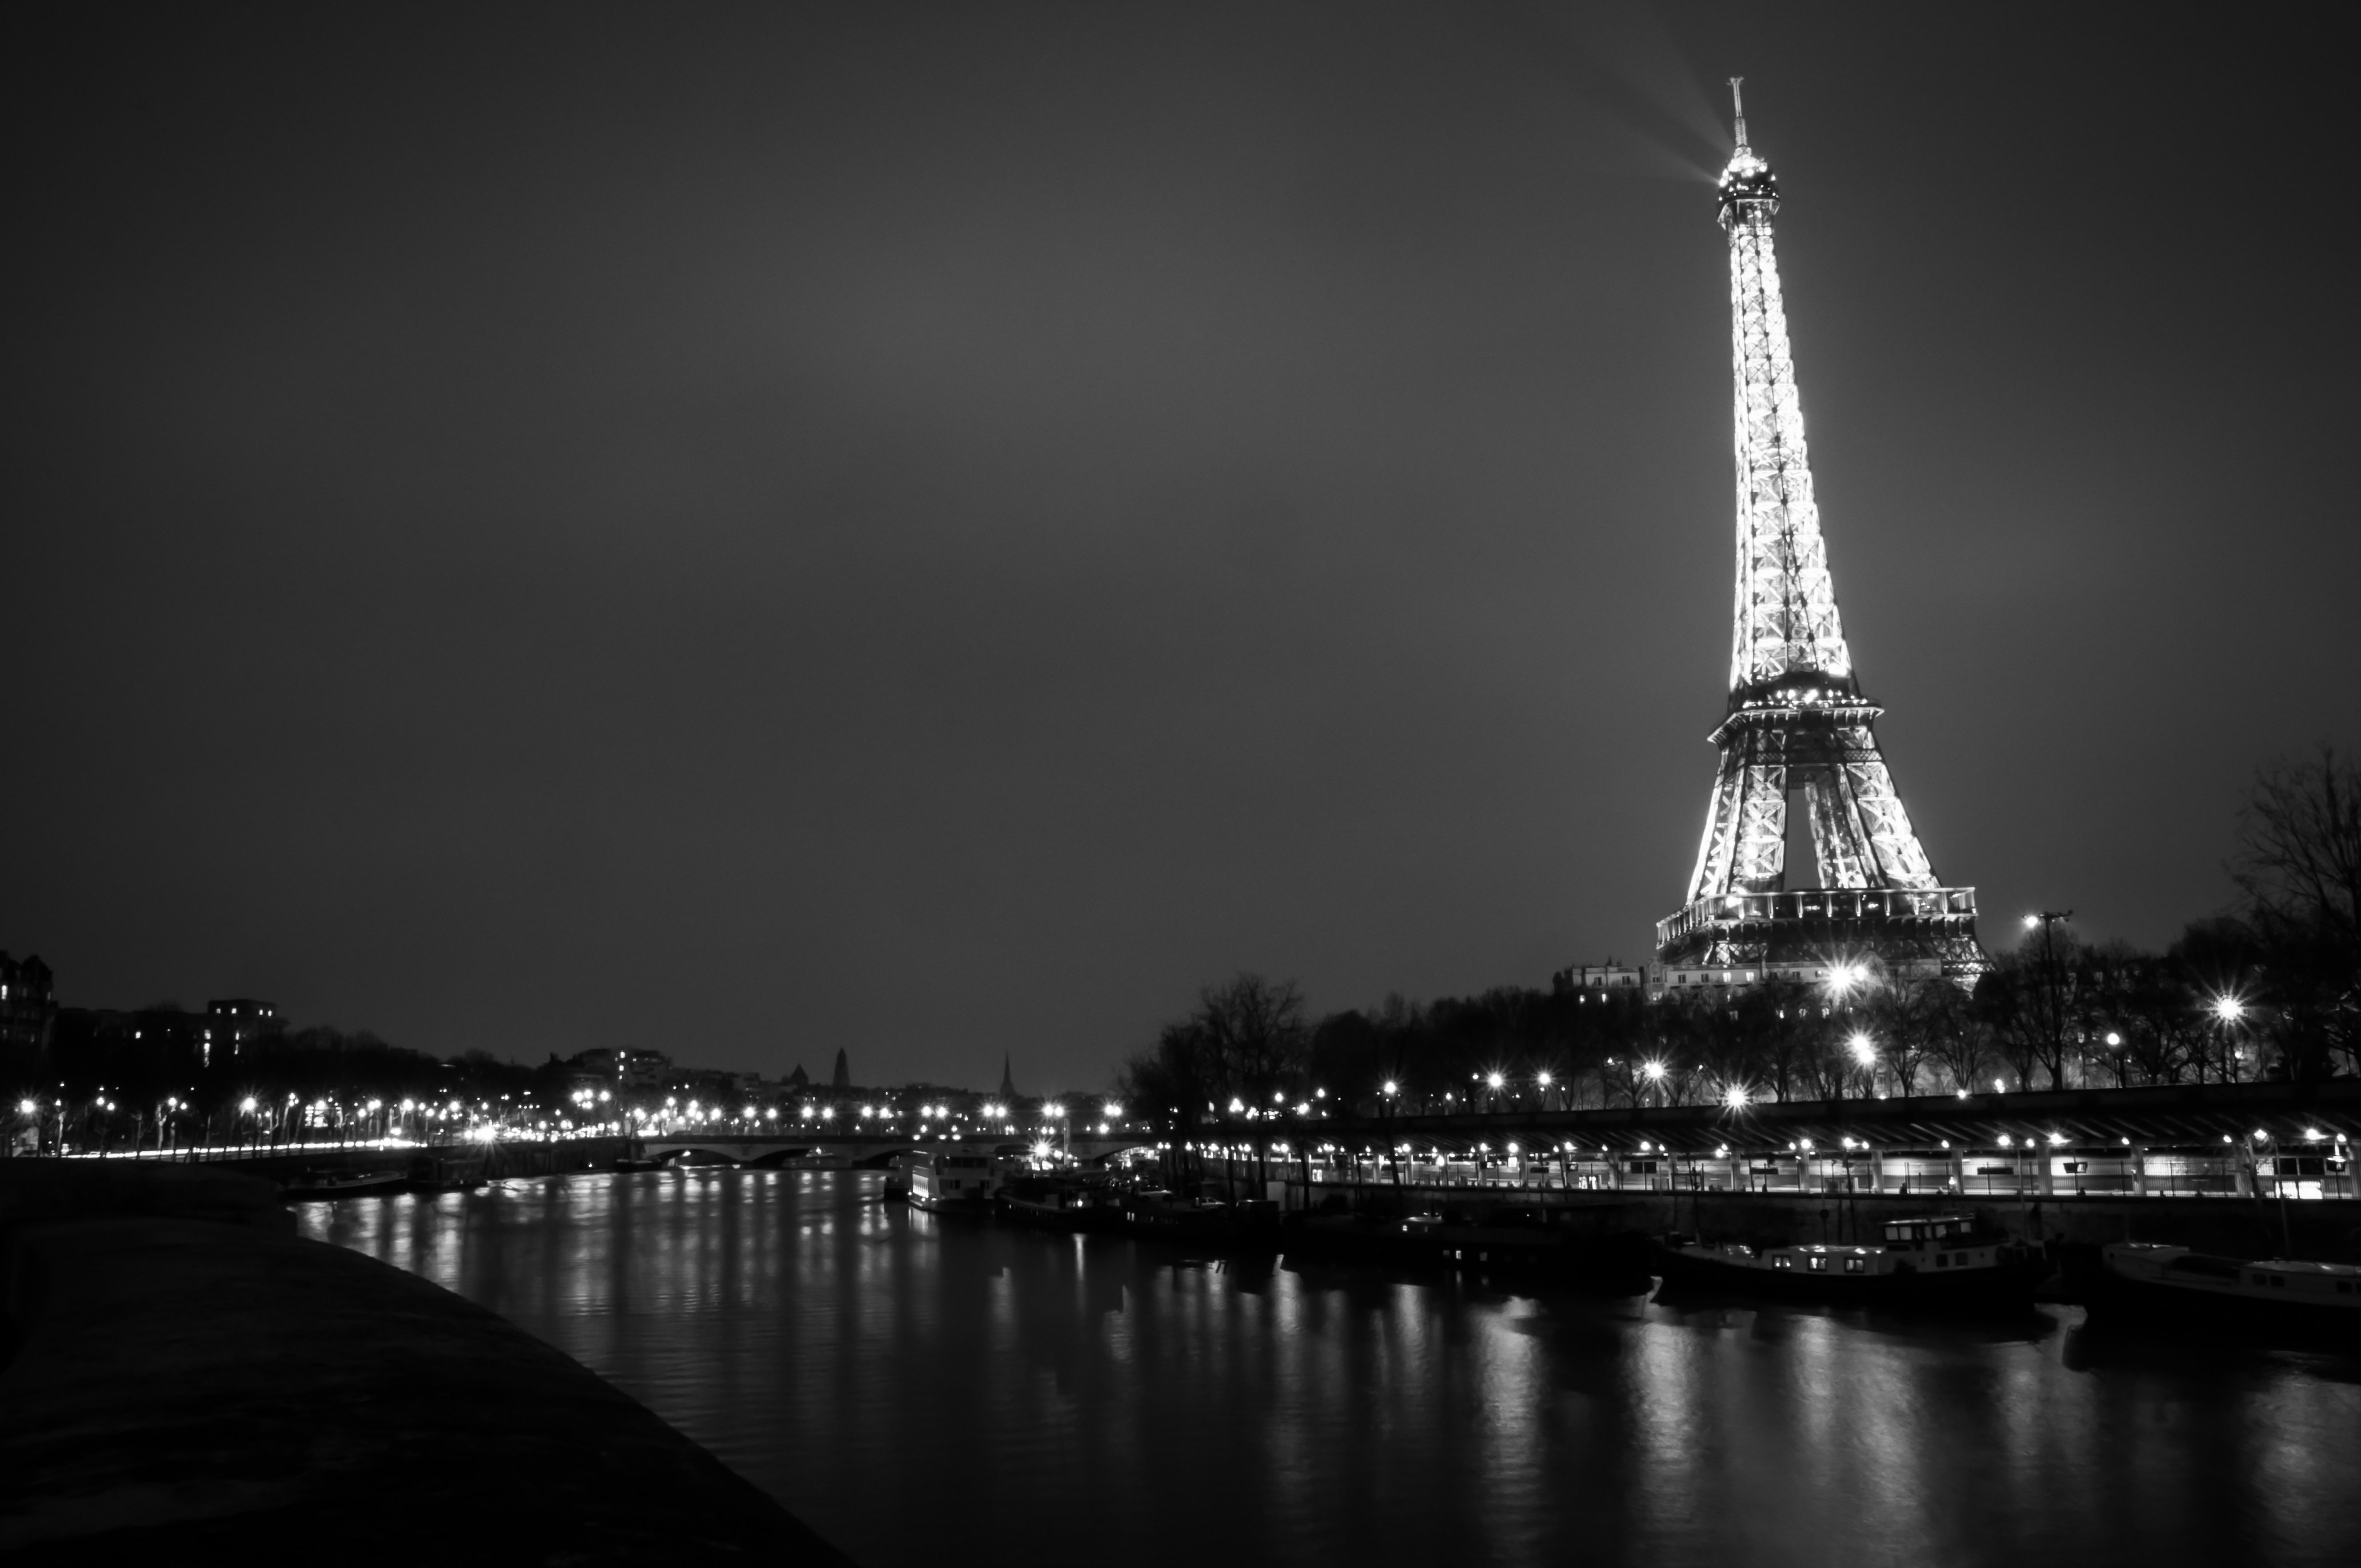 Free Download Viewing Gallery For Black And White Vintage Eiffel